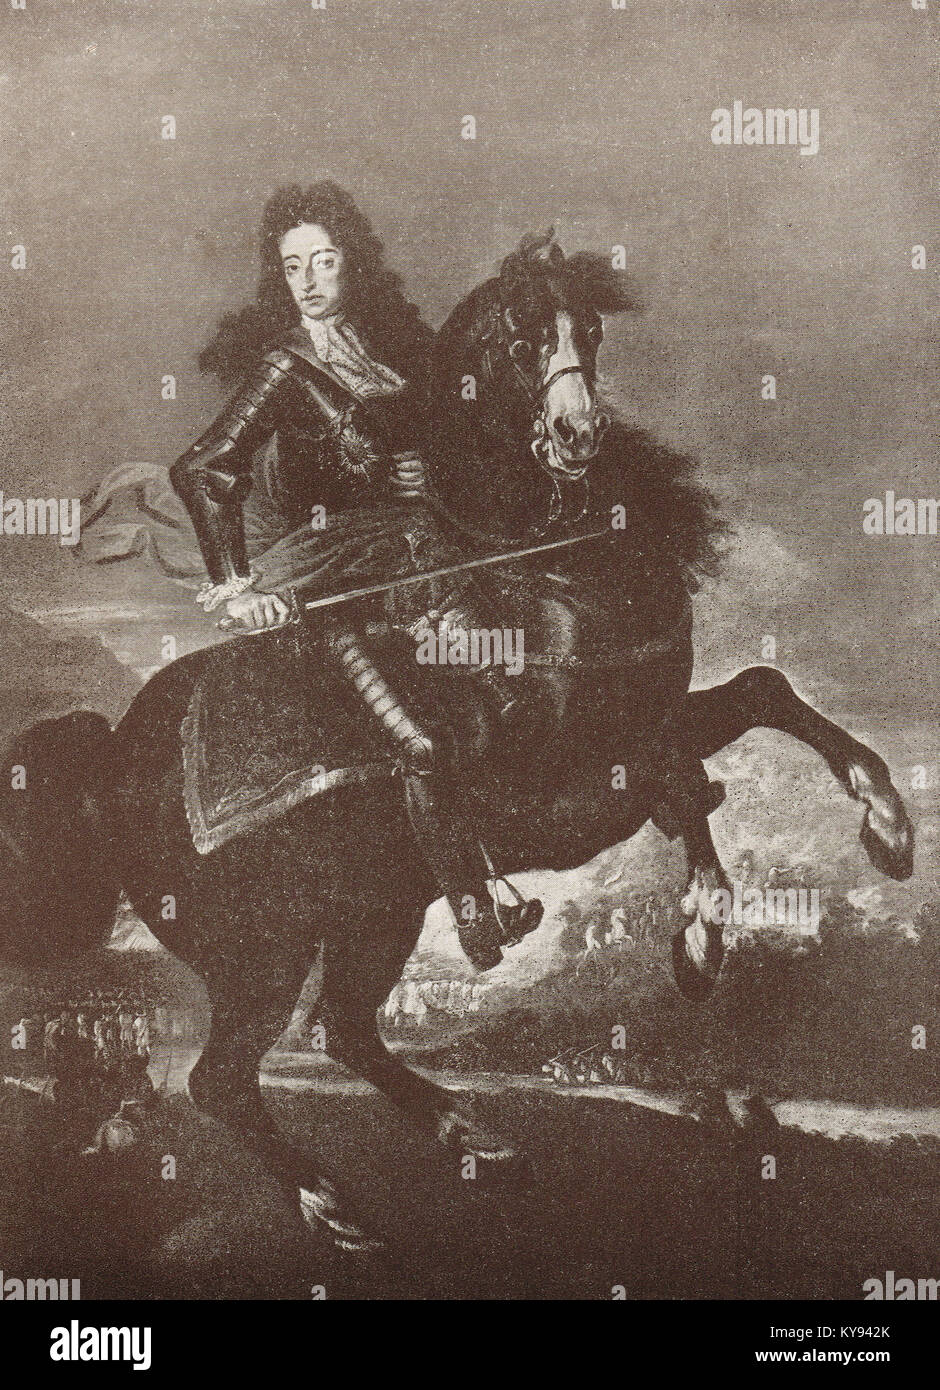 King William III of England on horseback at the Battle of the Boyne 1690 - Stock Image